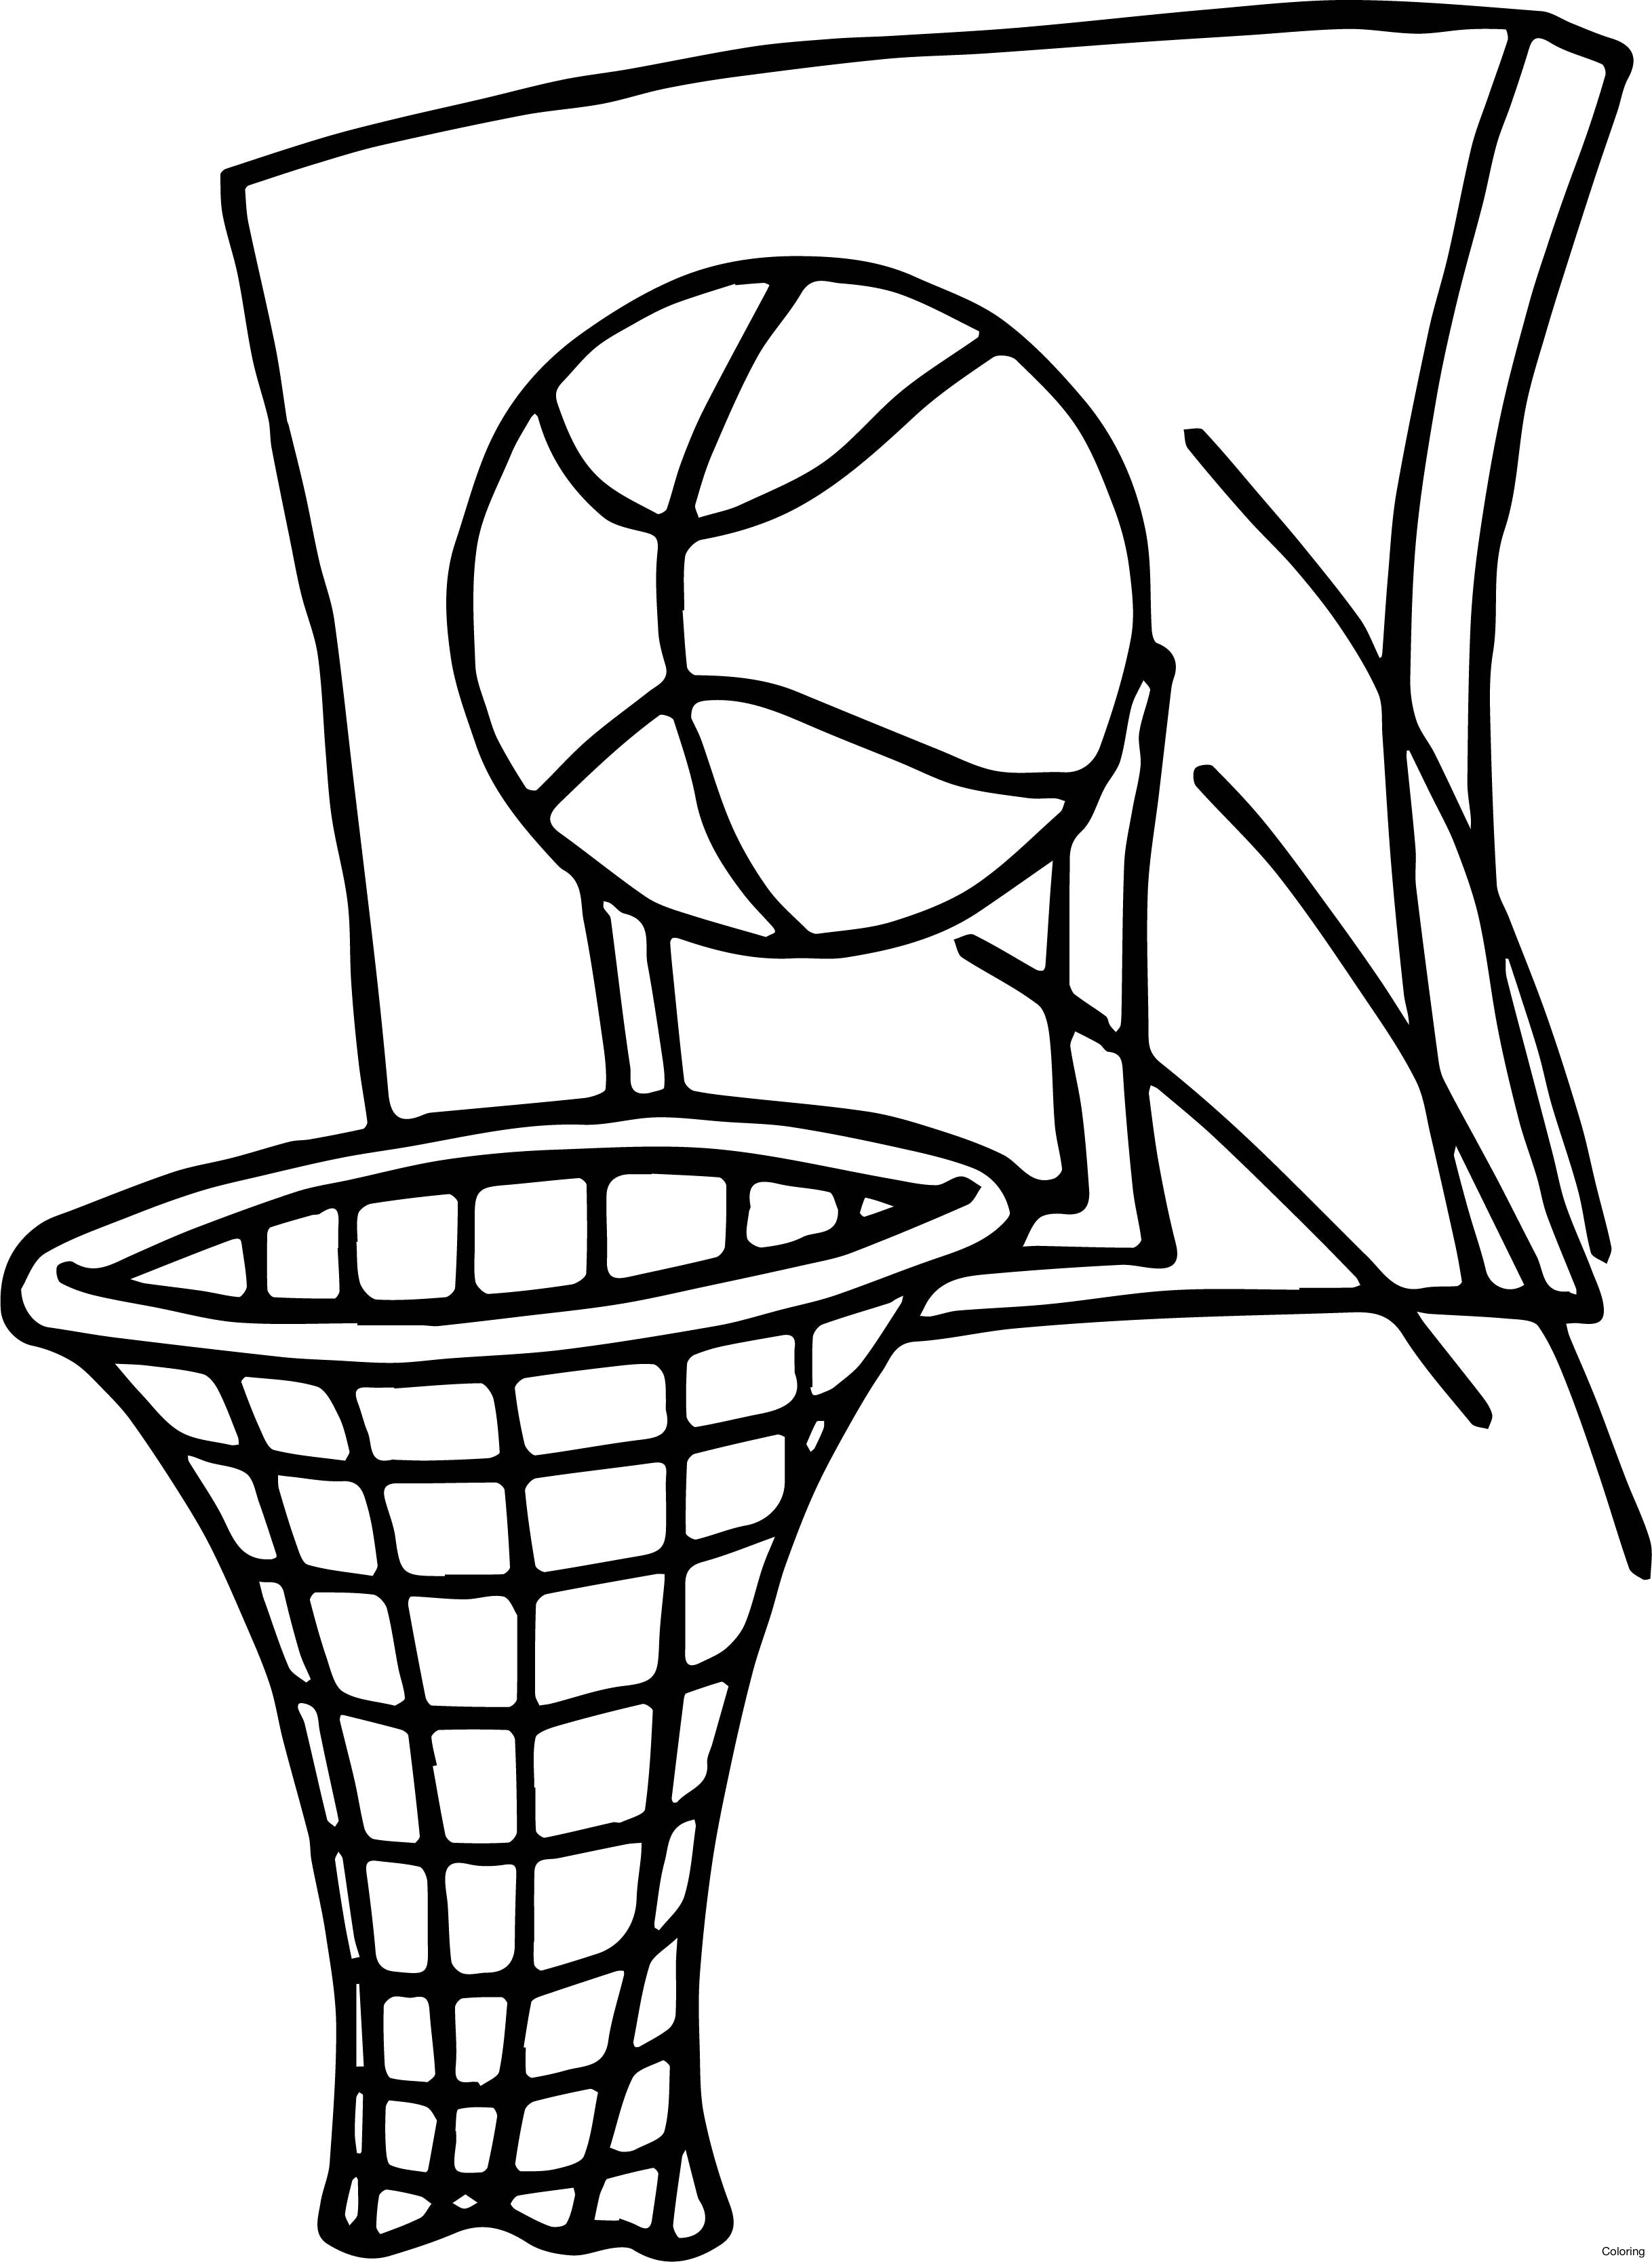 basketball ball drawing at getdrawings com